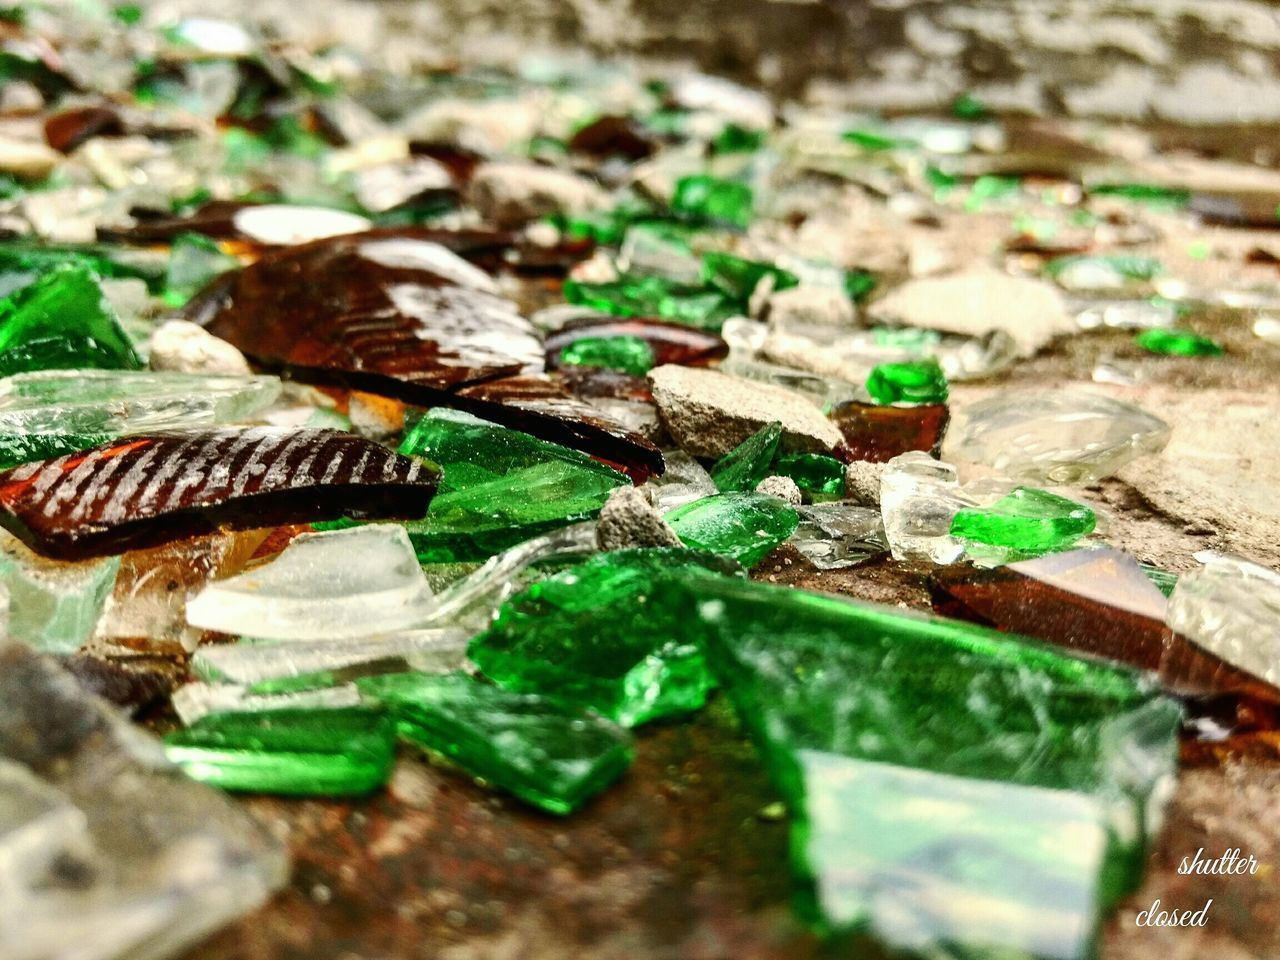 Broken glass is like glitters...... All shattered and shinny Selective Focus Close-up Nature Green Color Fragility Tranquility No People Surface Level First Eyeem Photo Softness Day Broken Glass Broken Glass Shattered Gliter MyClick MyPhotography Mobilephotography Modern Illusion Focus Object Maximum Closeness Looking Sunset Sun